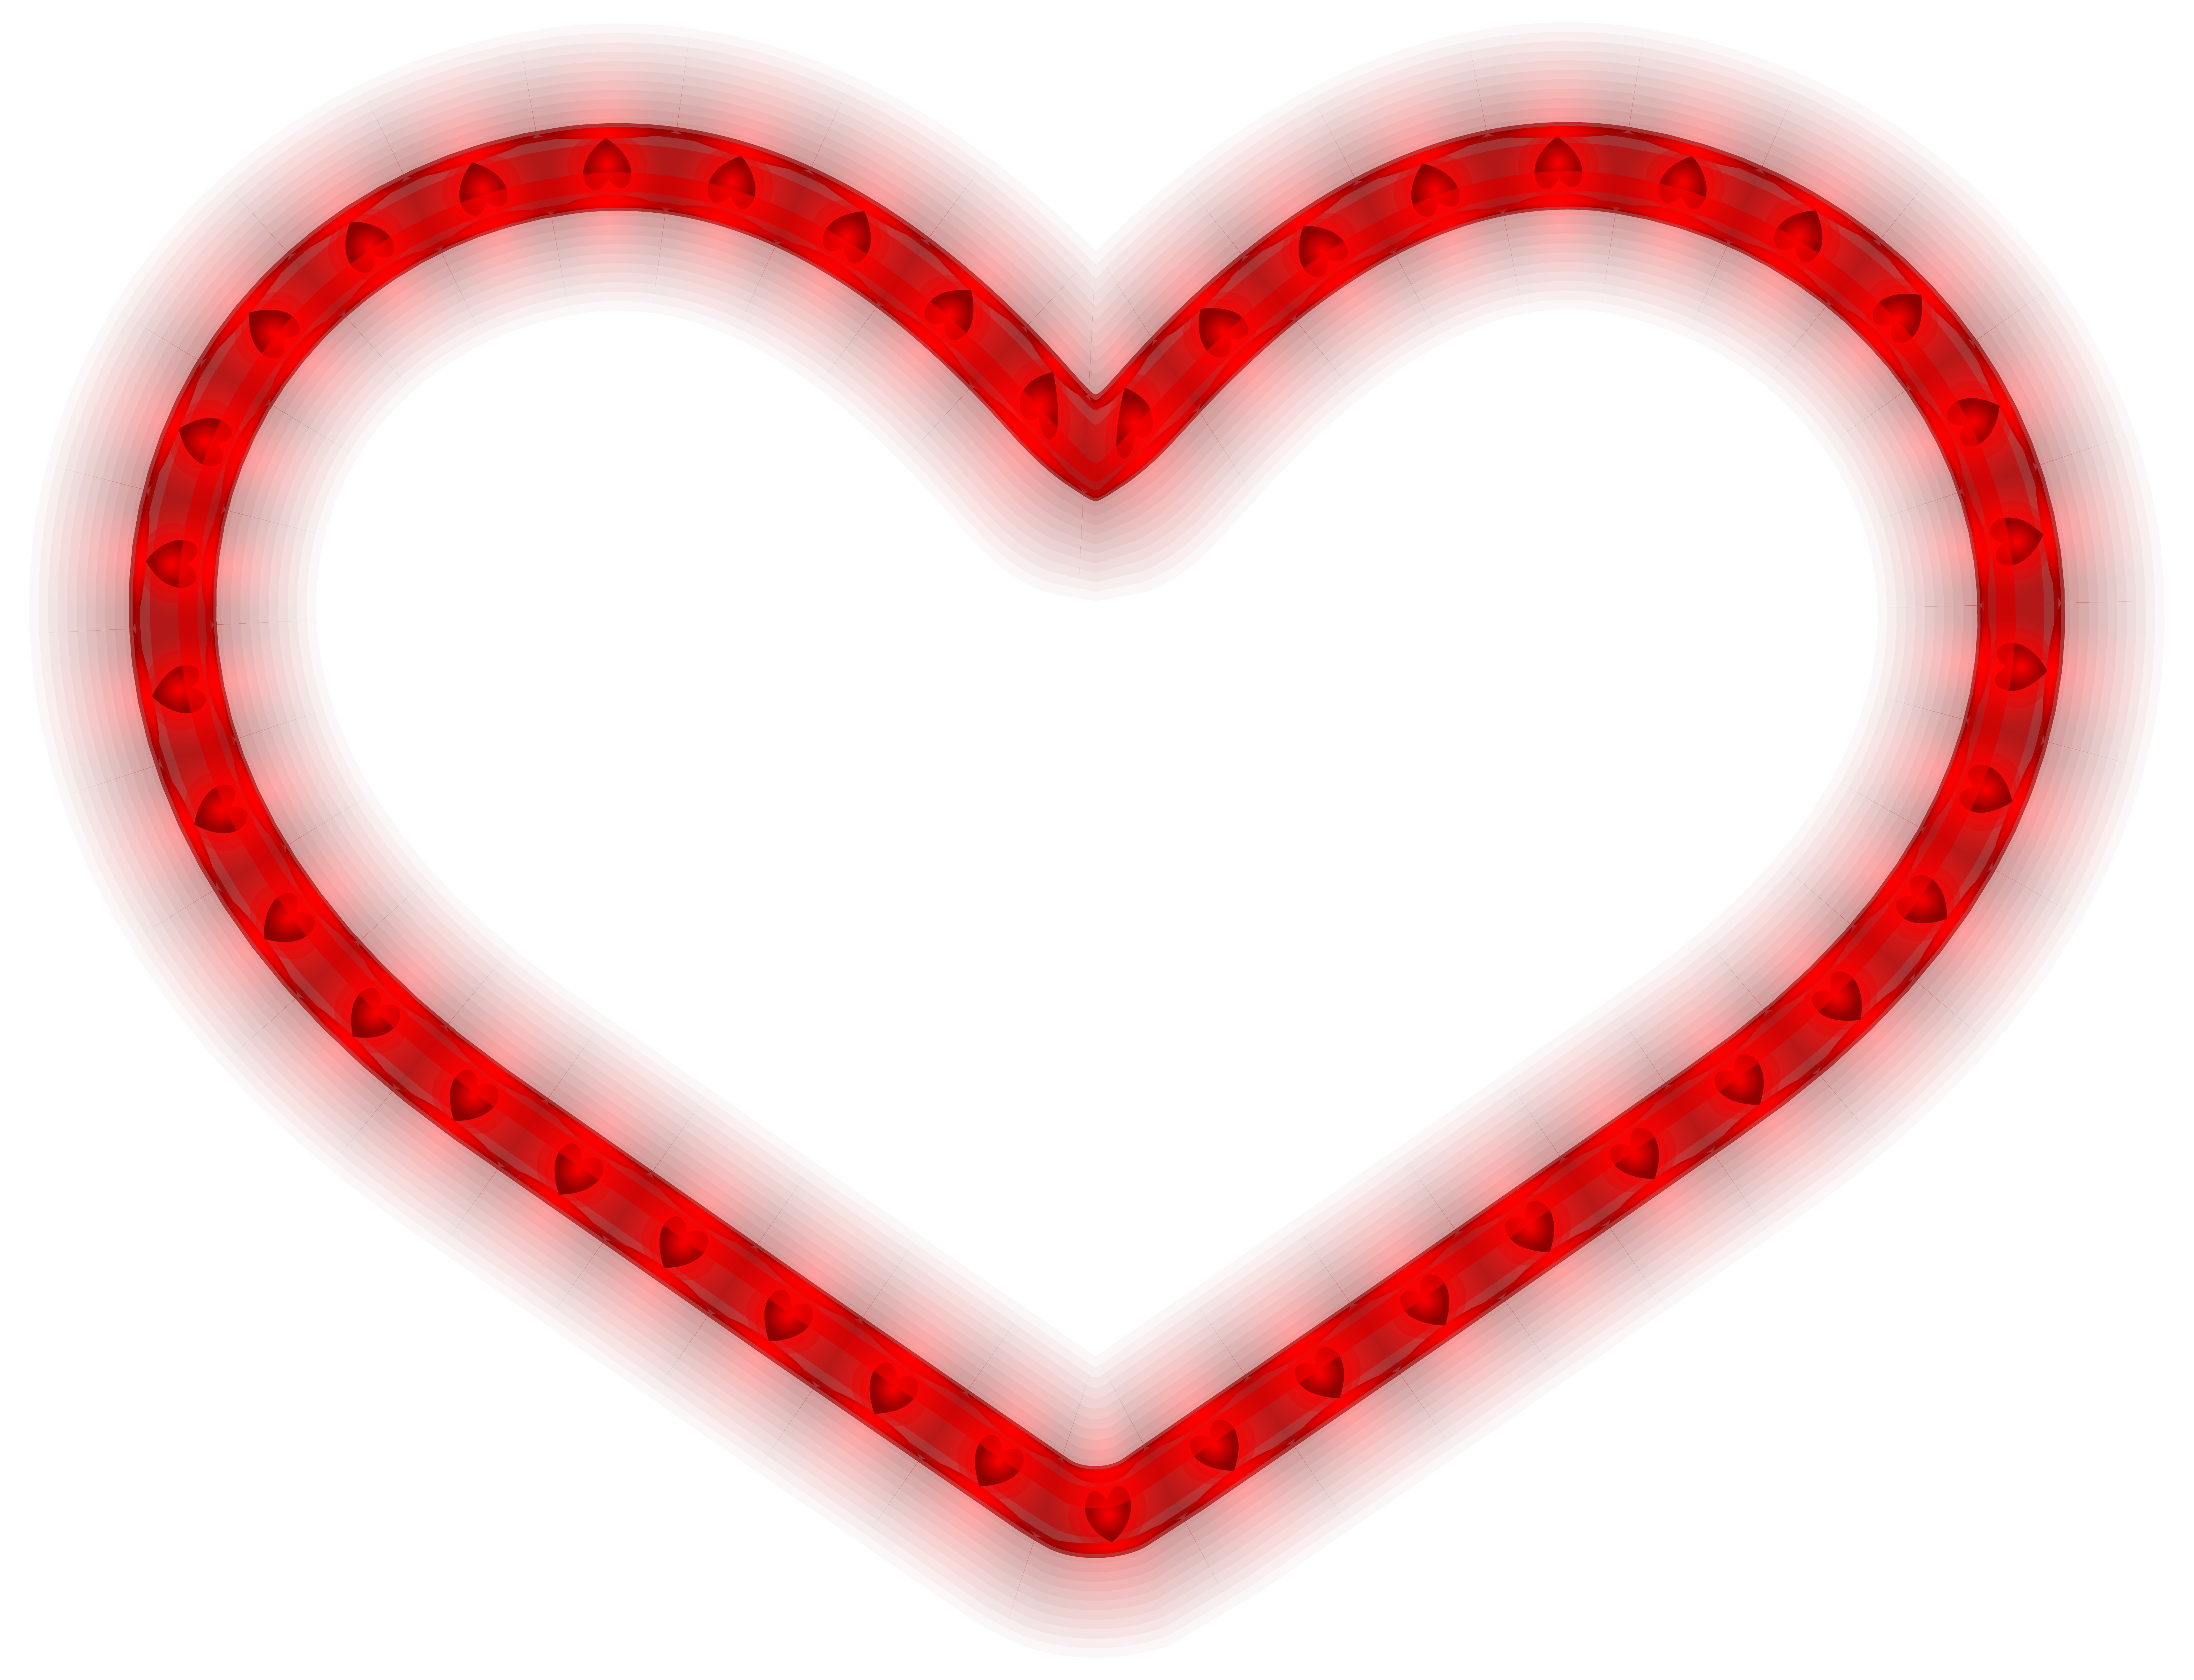 Heart png format. Glowing clipart image gallery